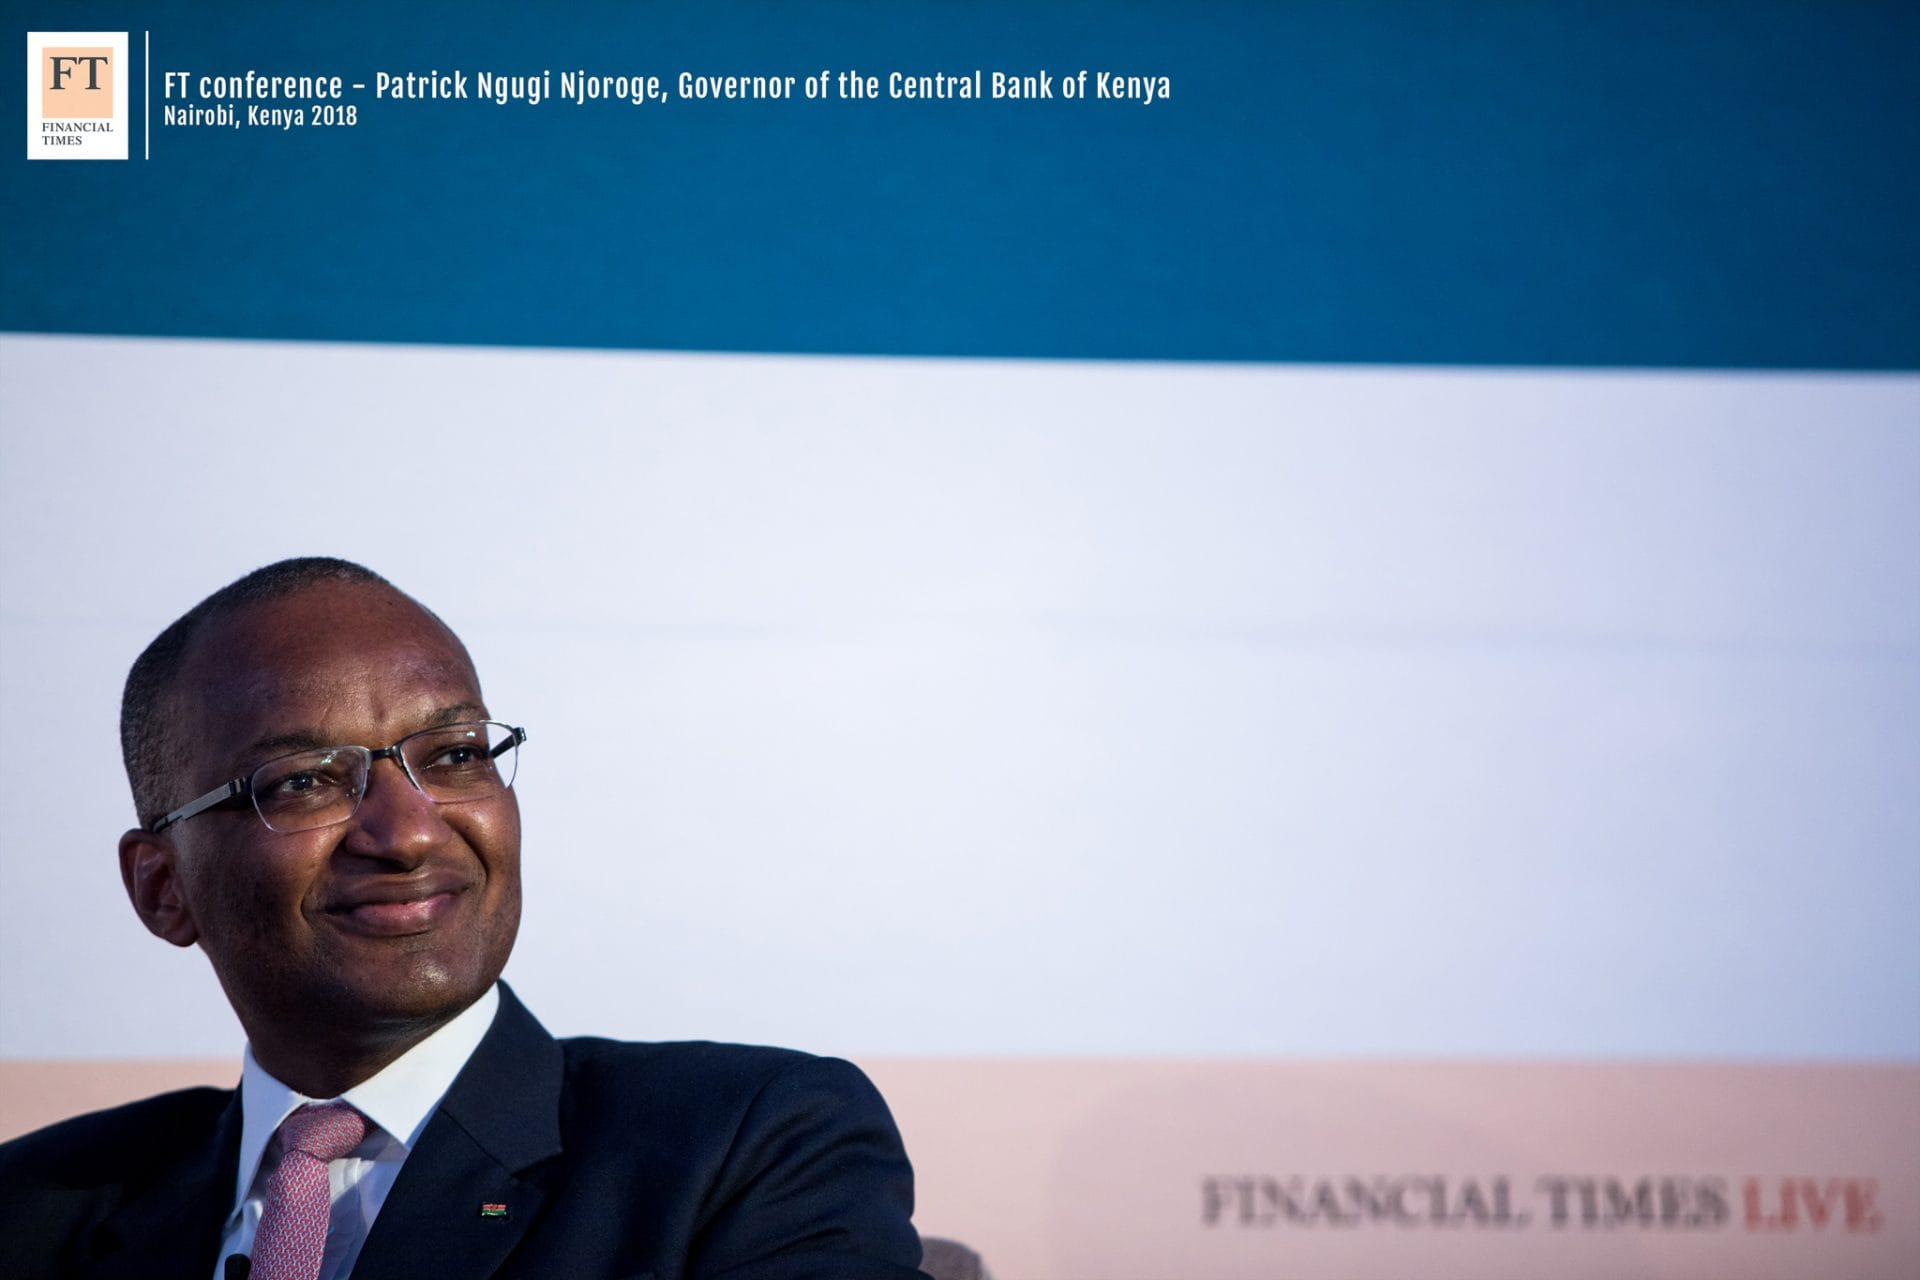 Corporate Event Photography Financial Times